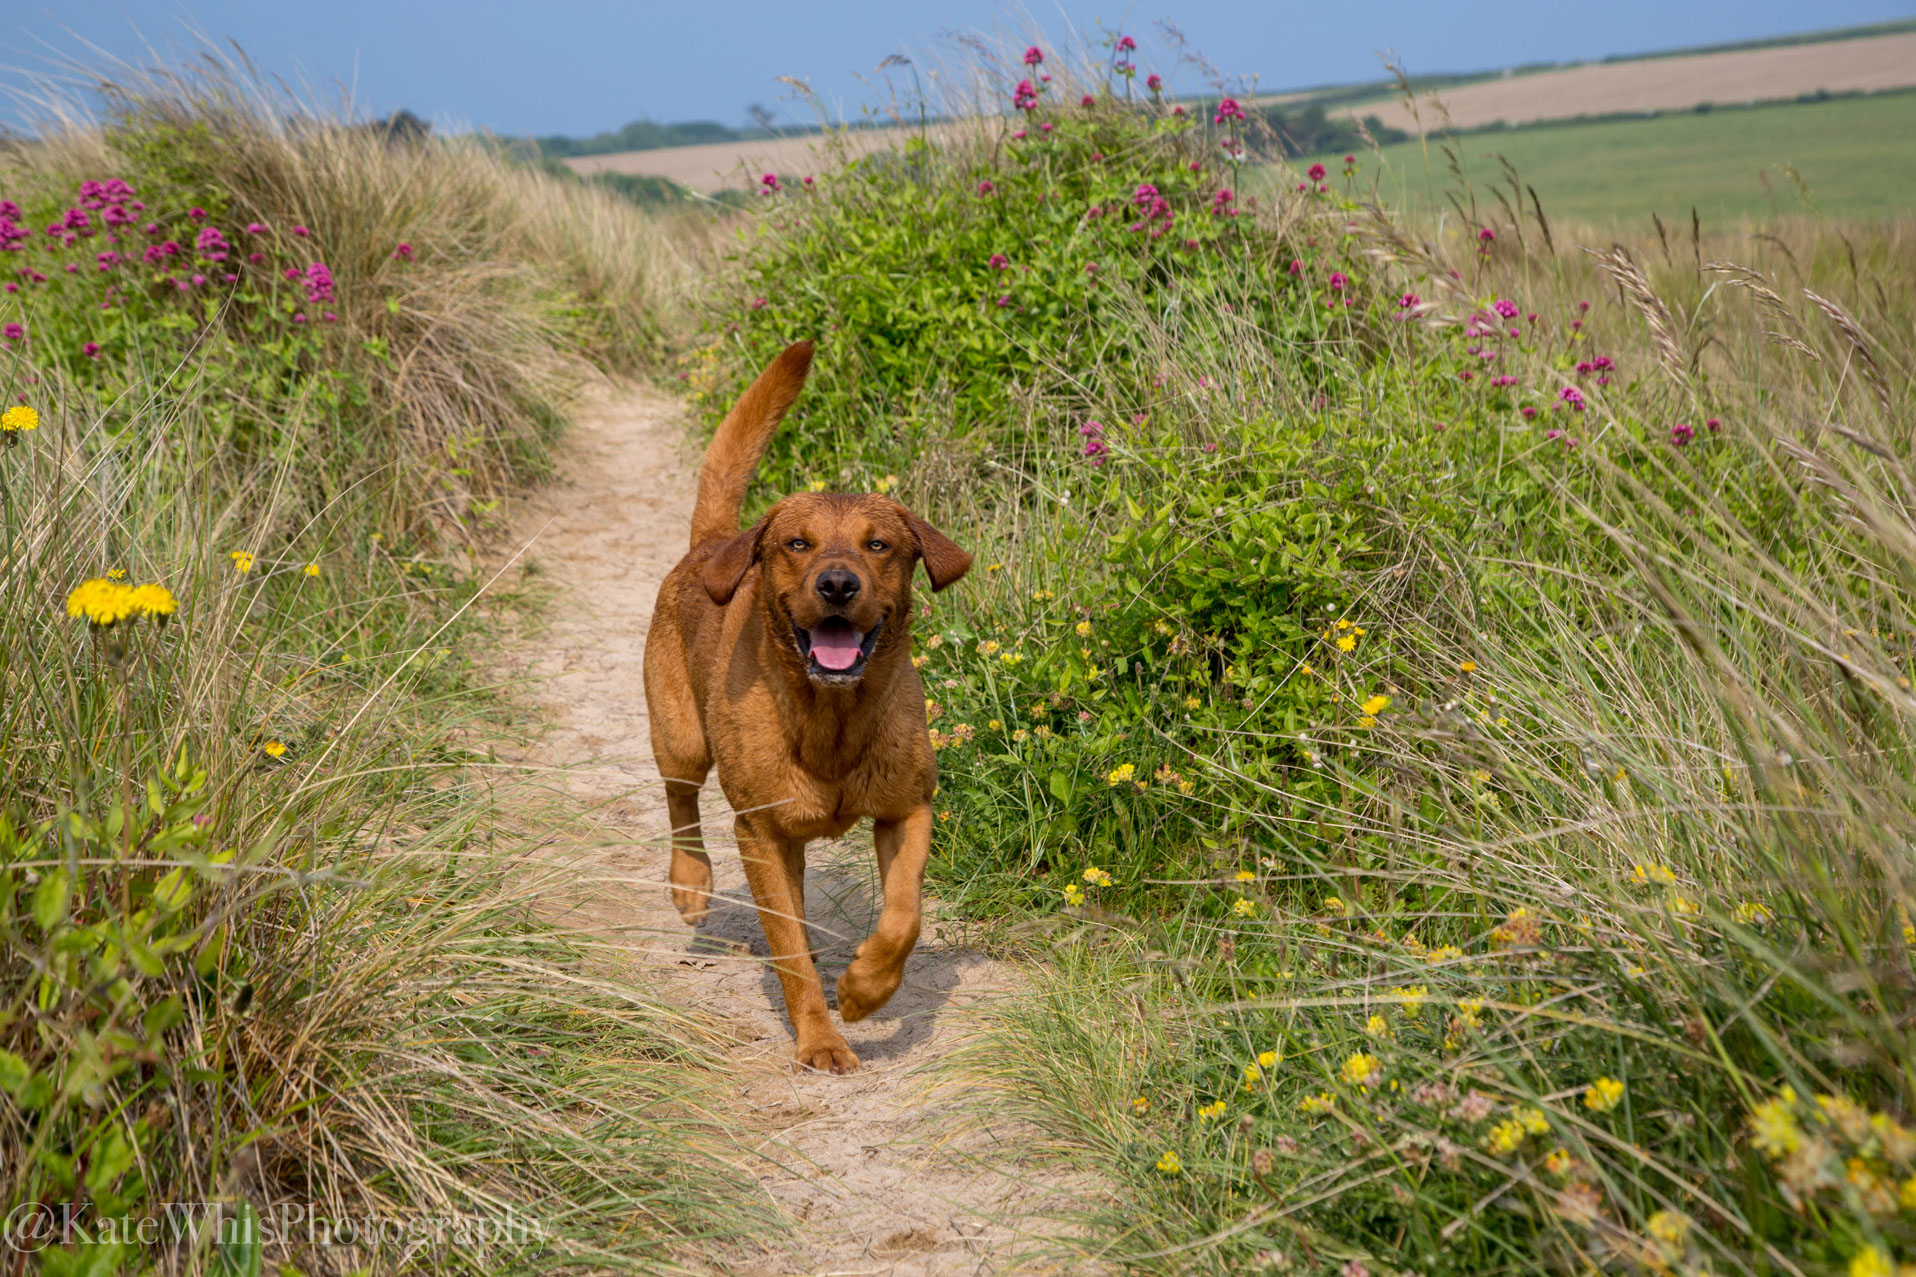 Dog running through the sand dunes at Tregirls